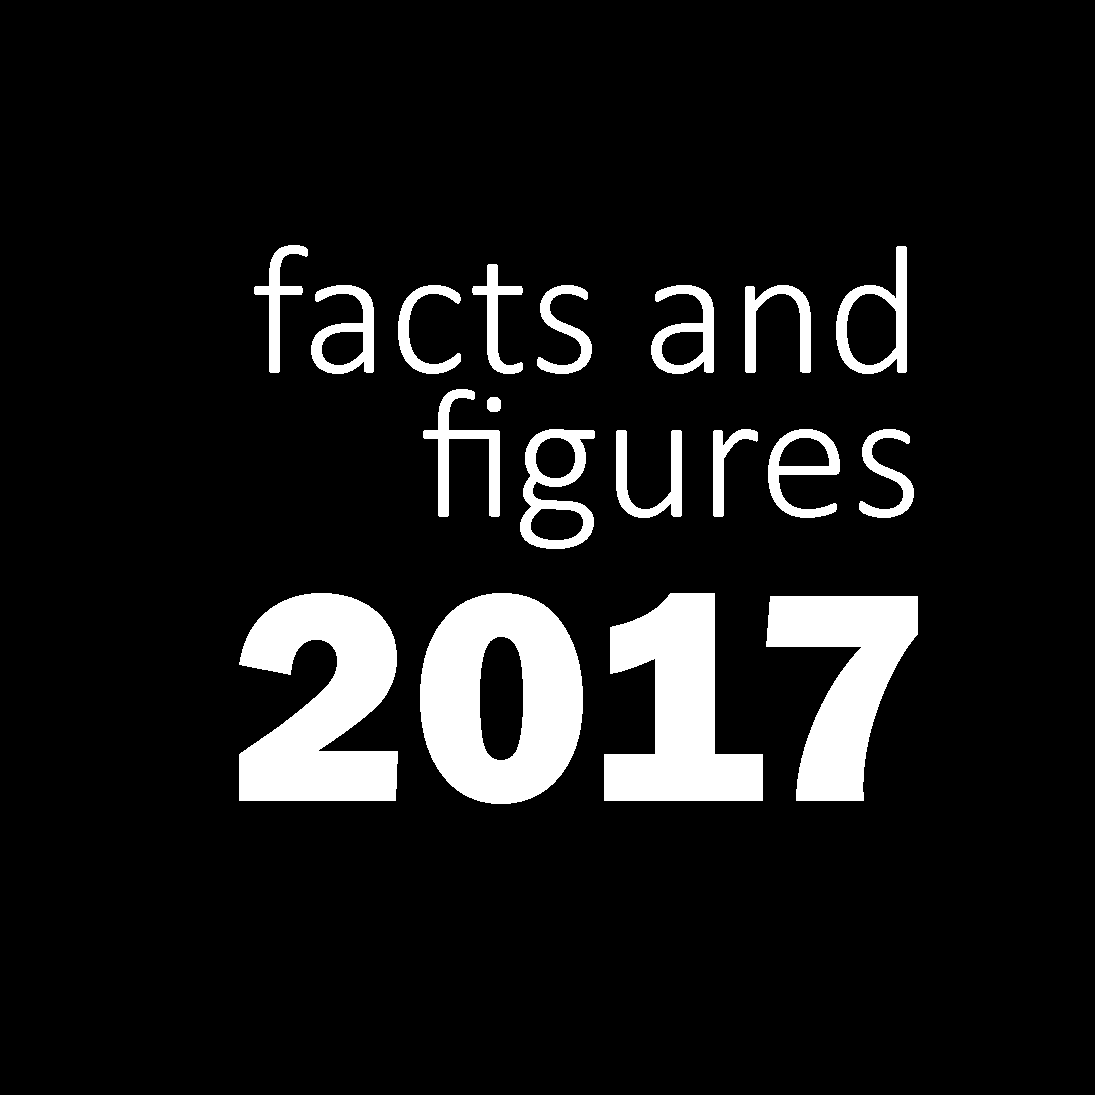 Fact and figures 2017 logo